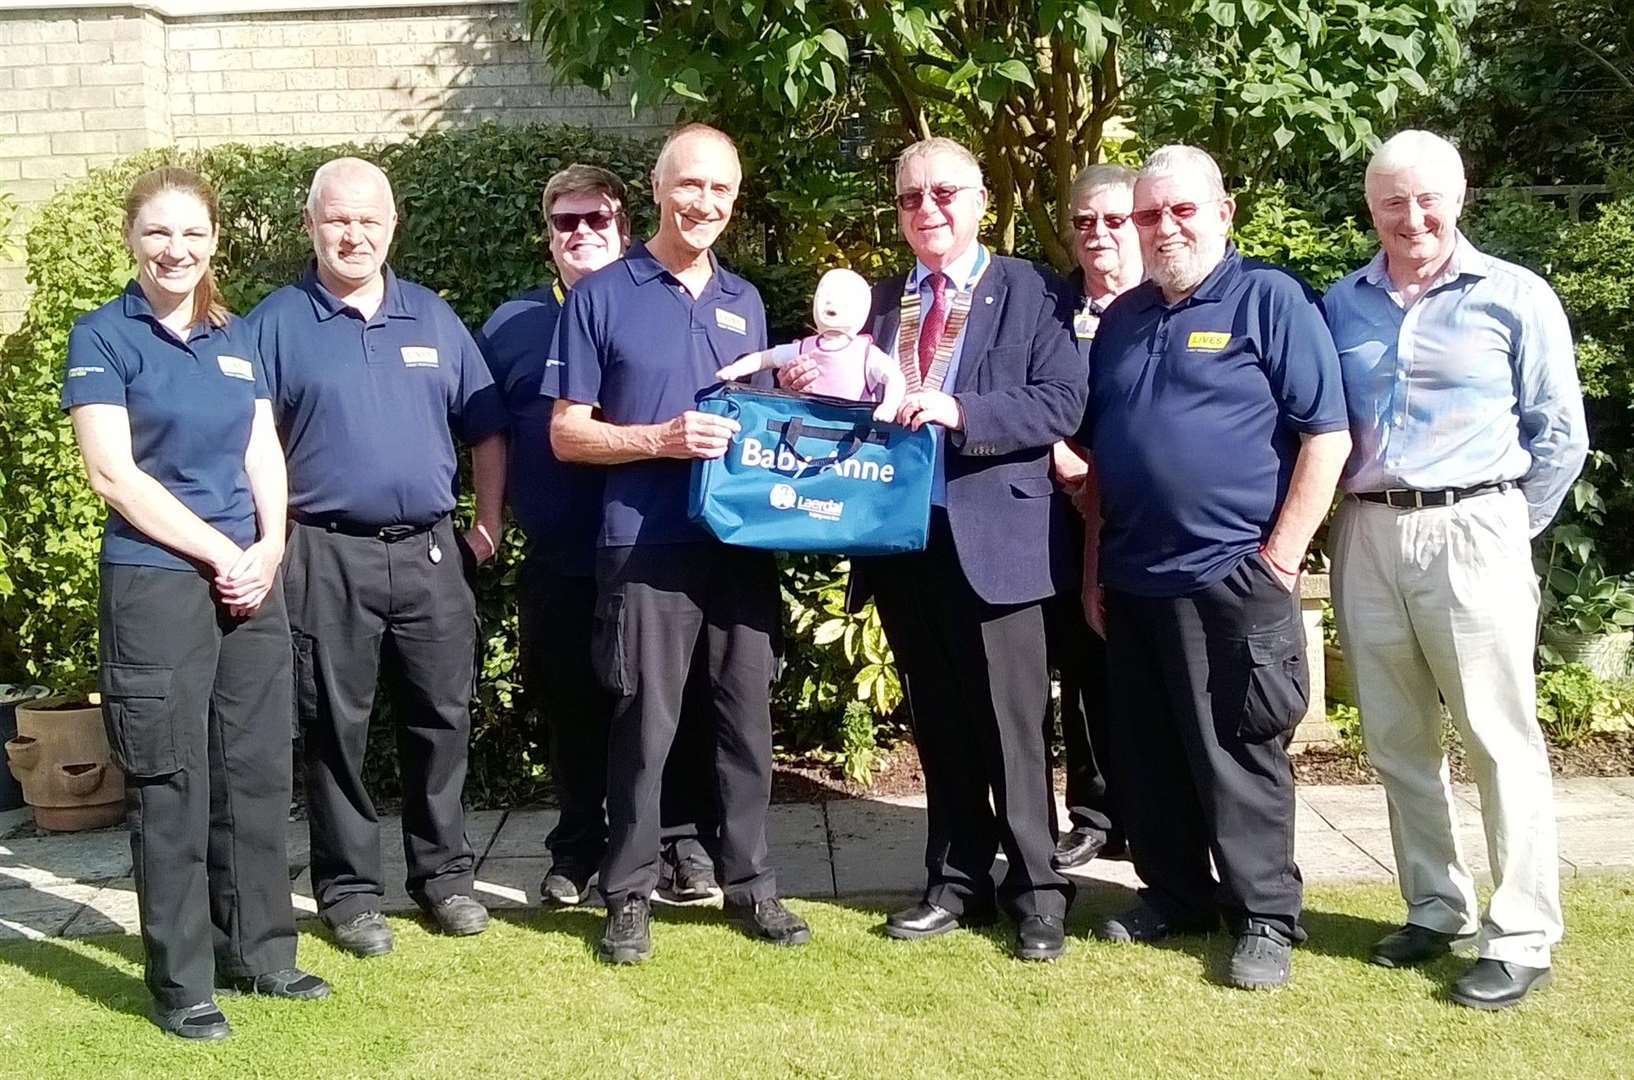 President of the Rotary Club of the Deepings, Alan Kendrick, presents the Baby Anne CPR doll to Russell Handley of Deepings First Responders